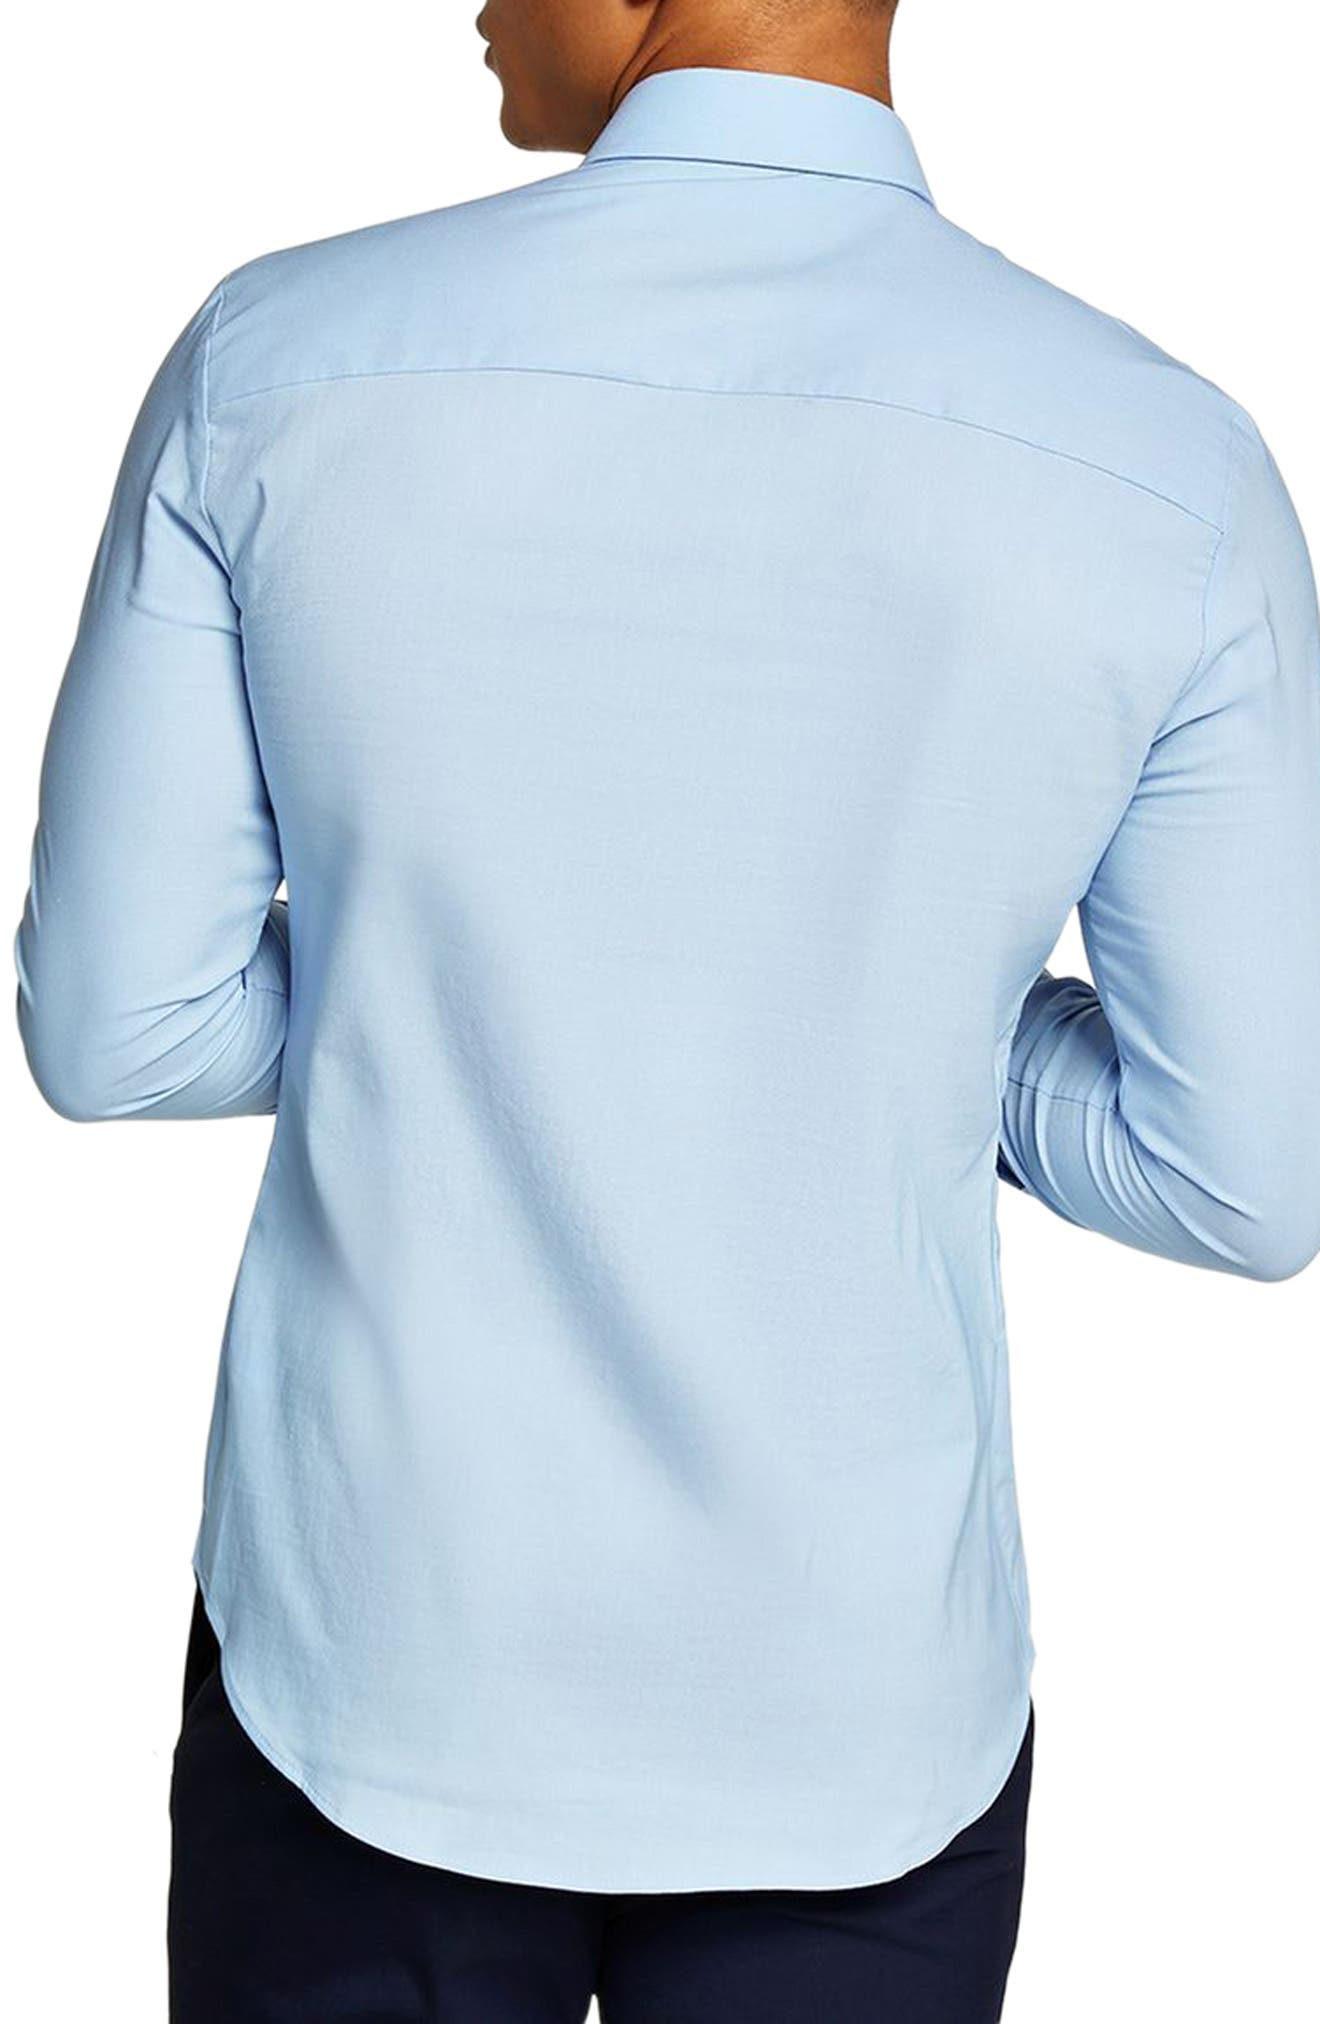 Muscle Fit Dress Shirt,                             Alternate thumbnail 2, color,                             LIGHT BLUE